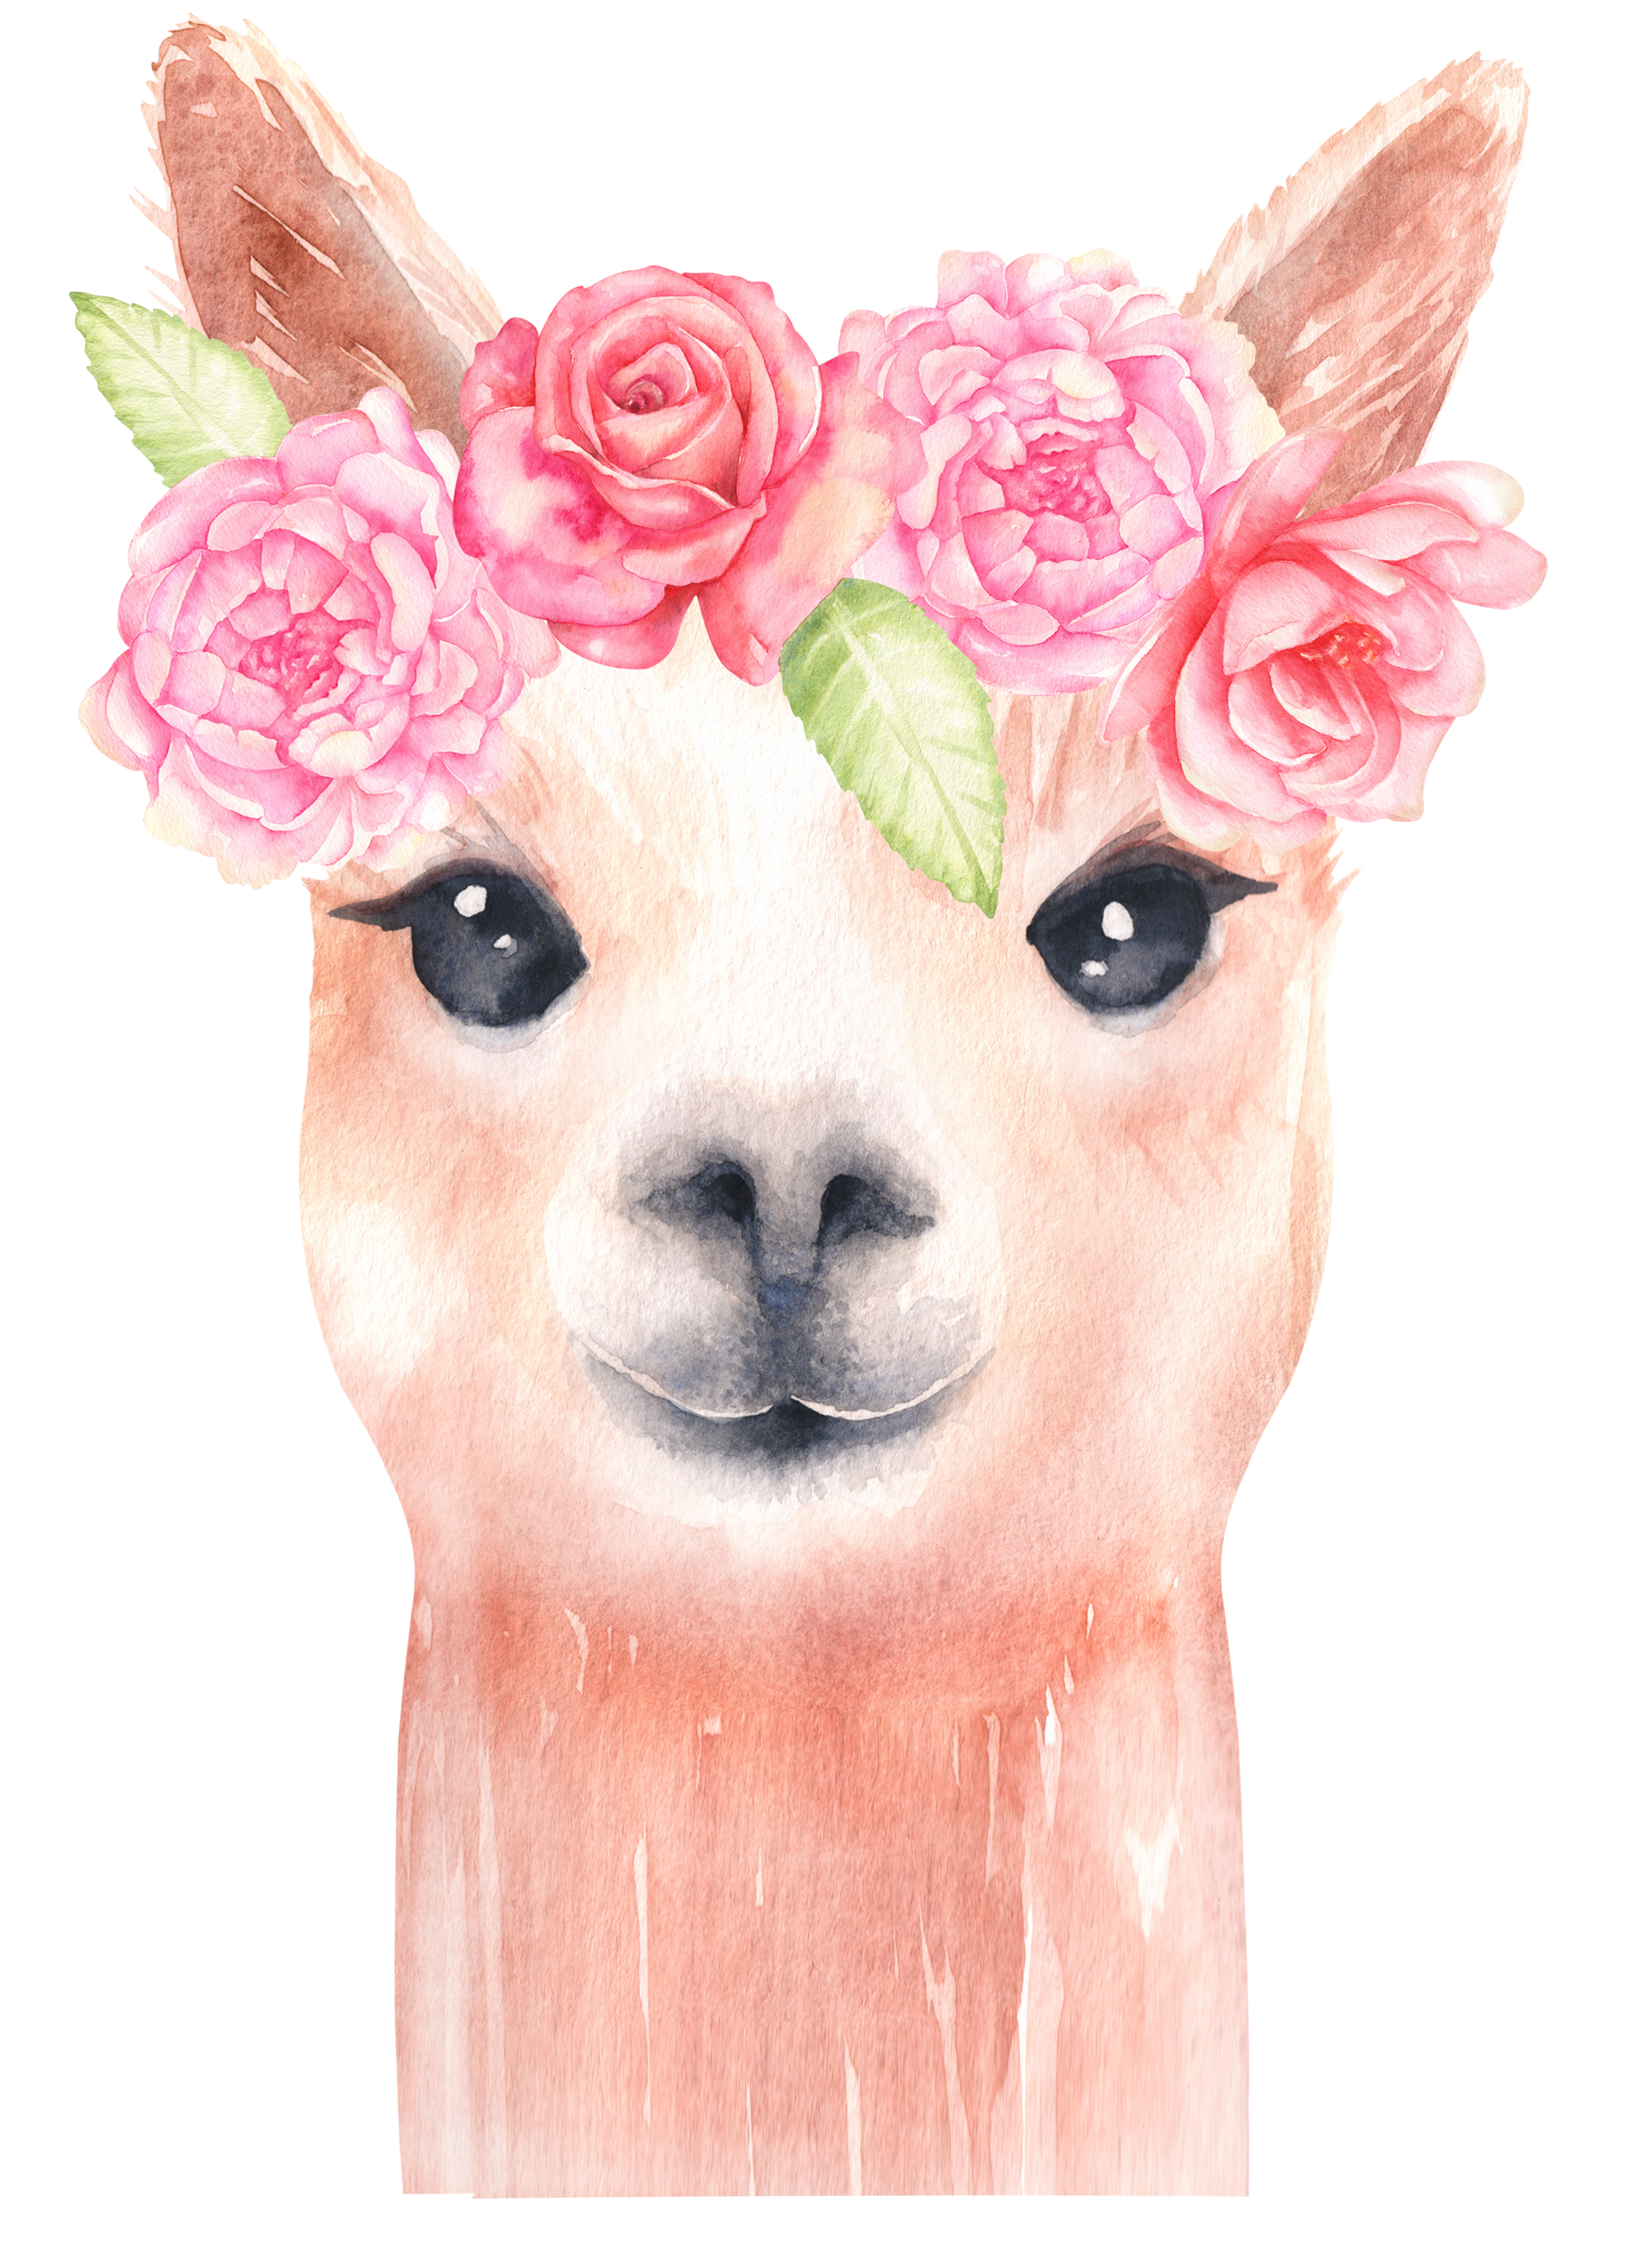 hight resolution of alpaca and flower clipart llama clip art watercolor clipart floral clipart baby